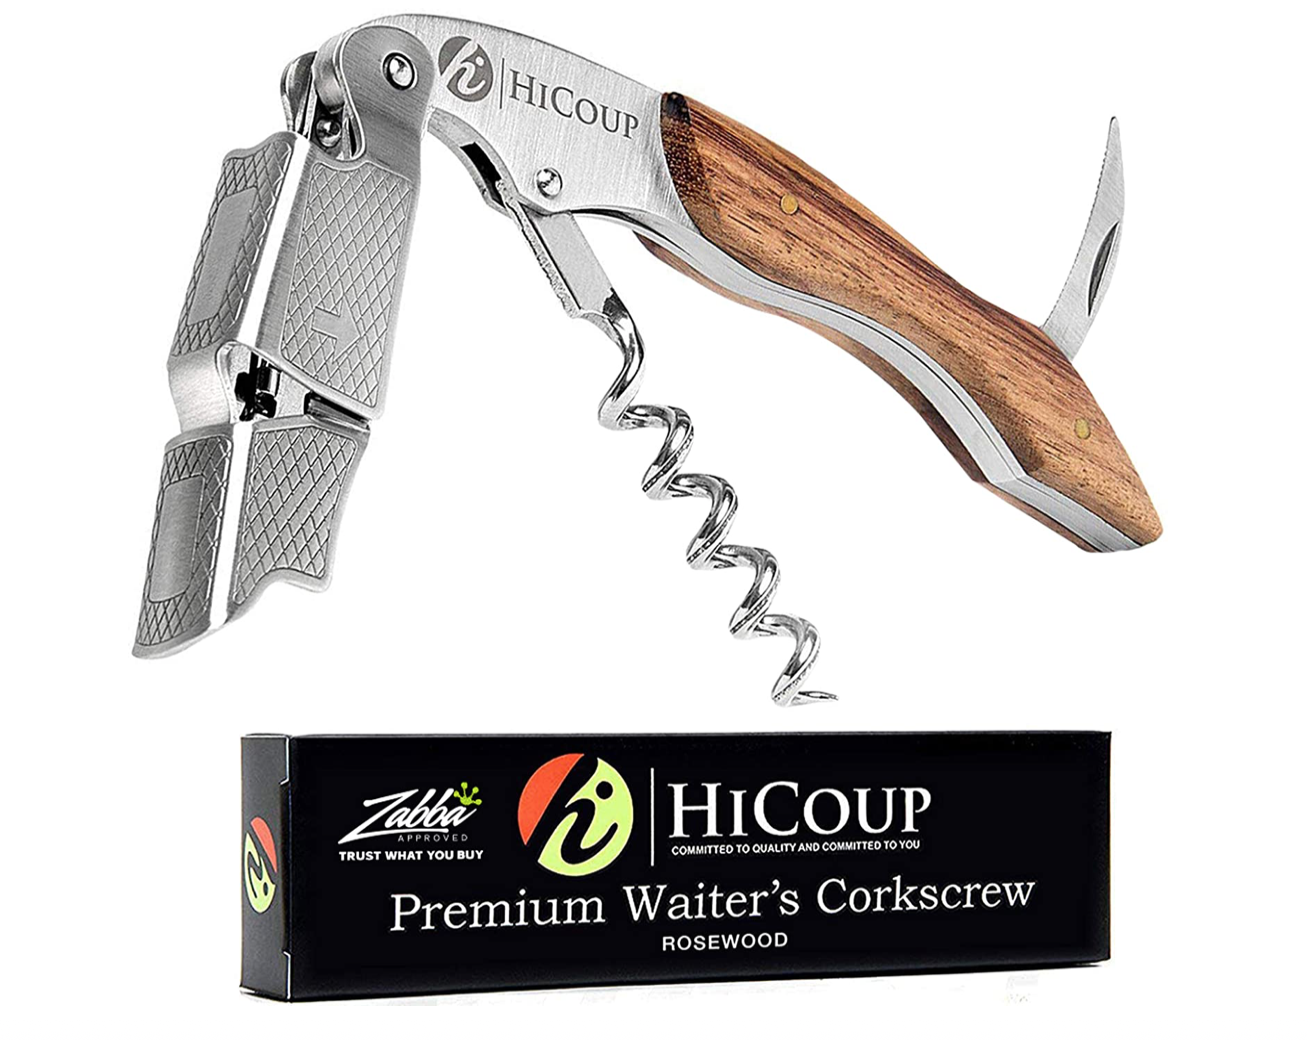 Camp bottle opener and corkscrew